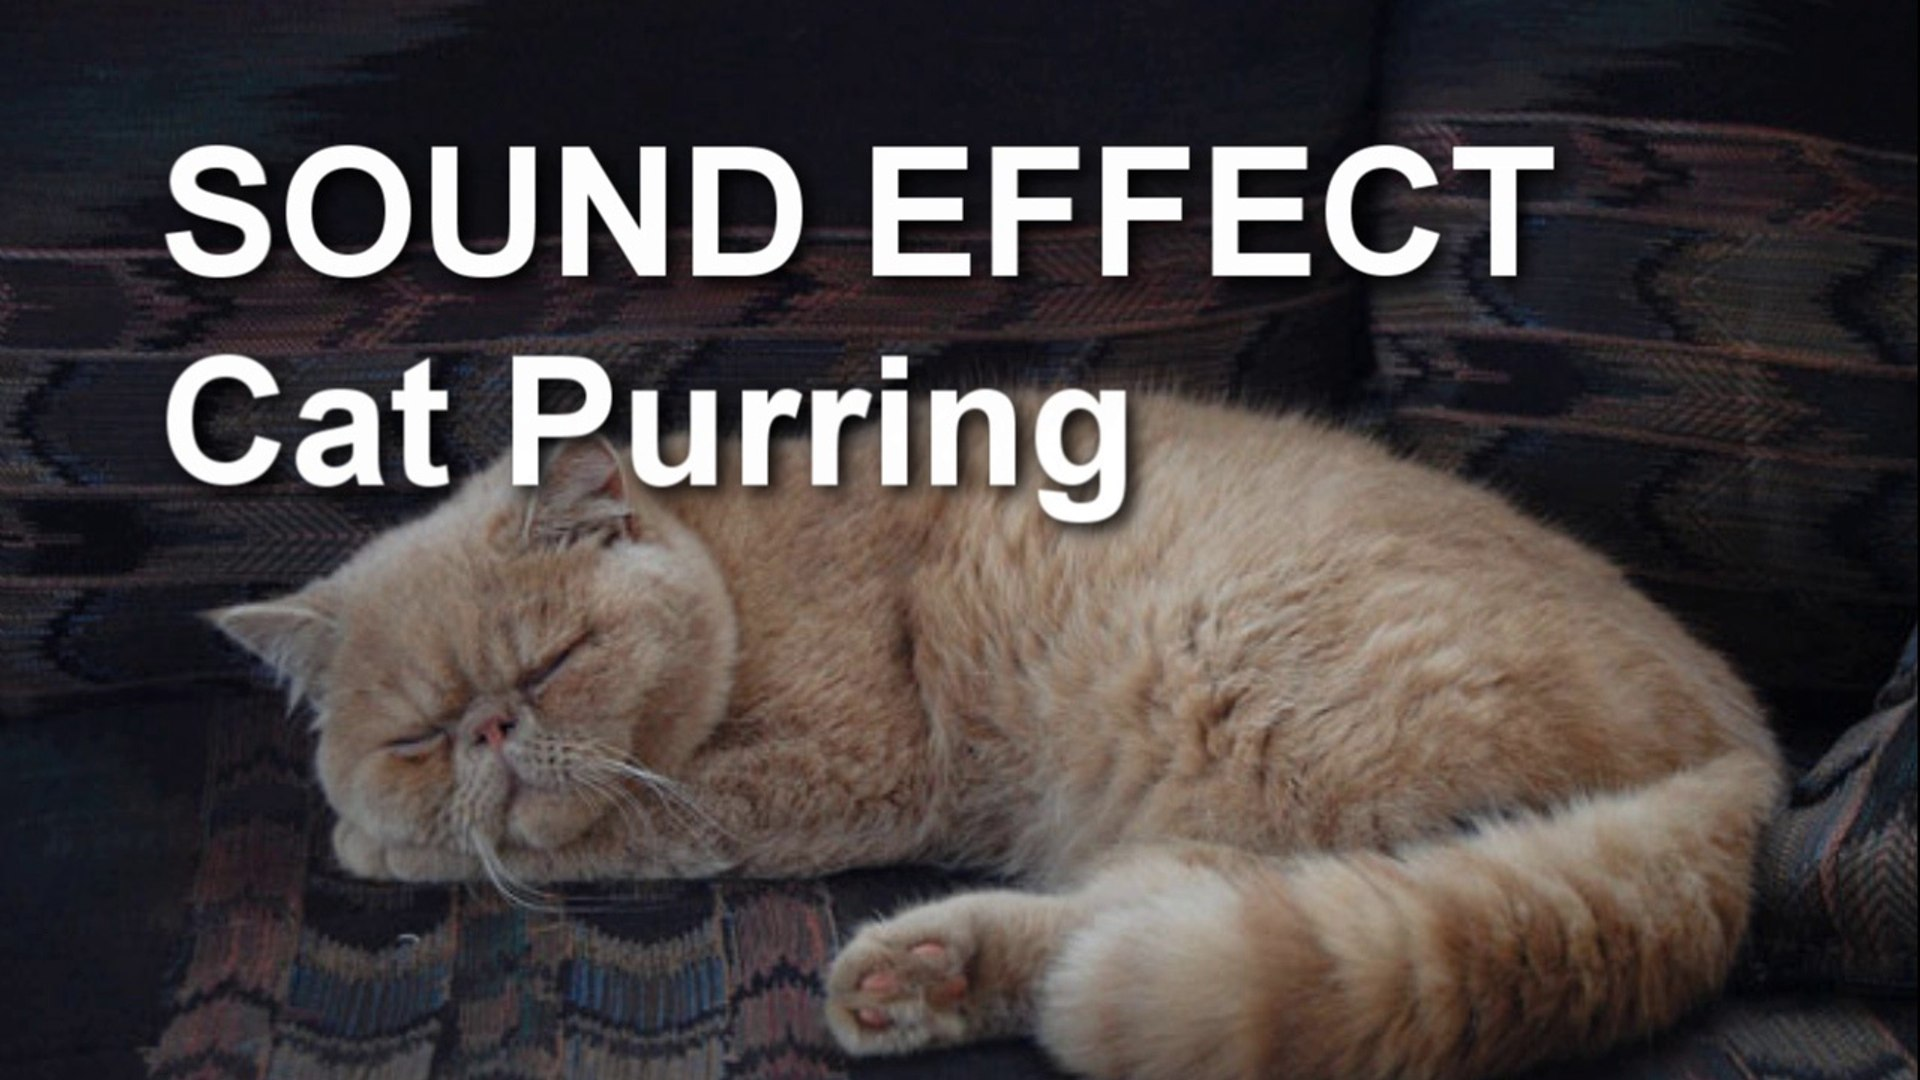 Cat Purring Sound Effect Video Dailymotion